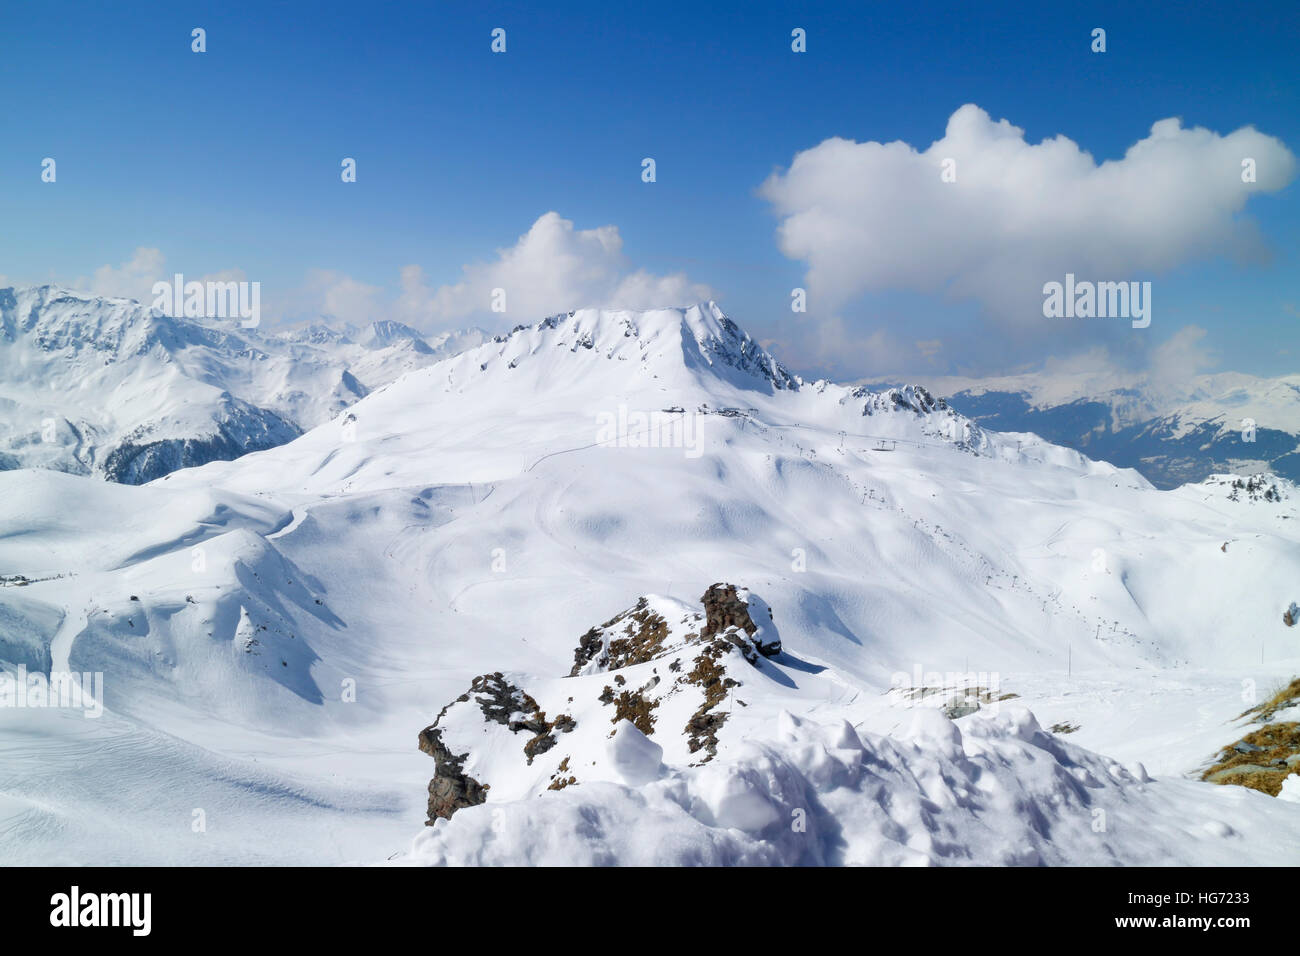 Winter Alps panorama with downhill ski slopes, high up lifts on cloudy day, Paradiski, Plagne resort, France - Stock Image